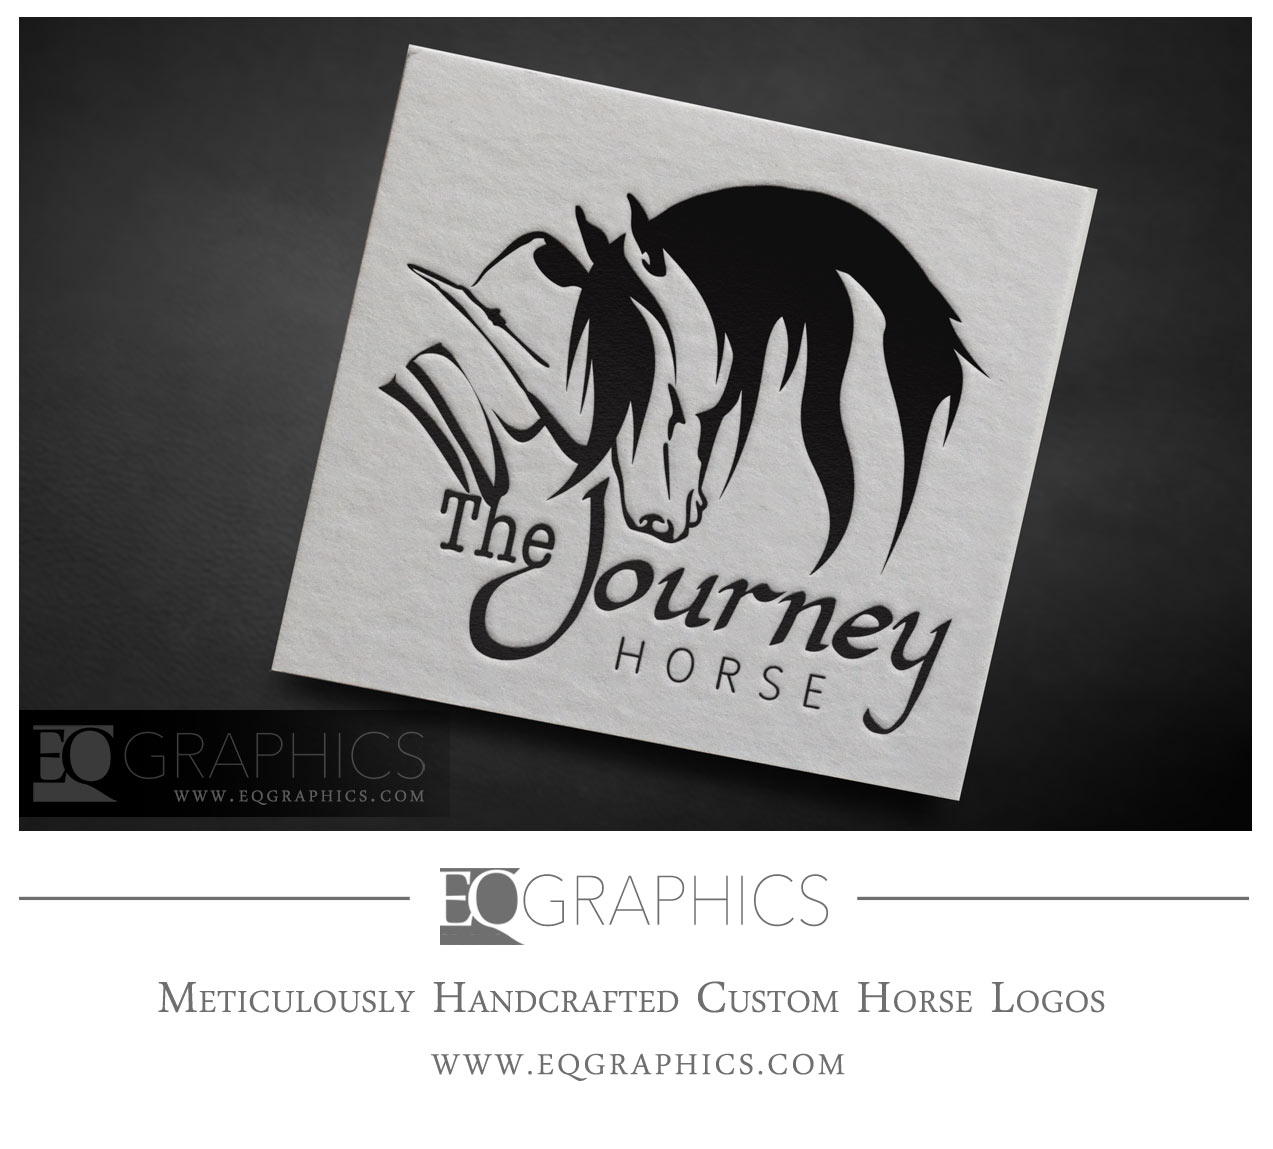 The Journey Horse Friesian Logo Design by EQ Graphics Equine Logos